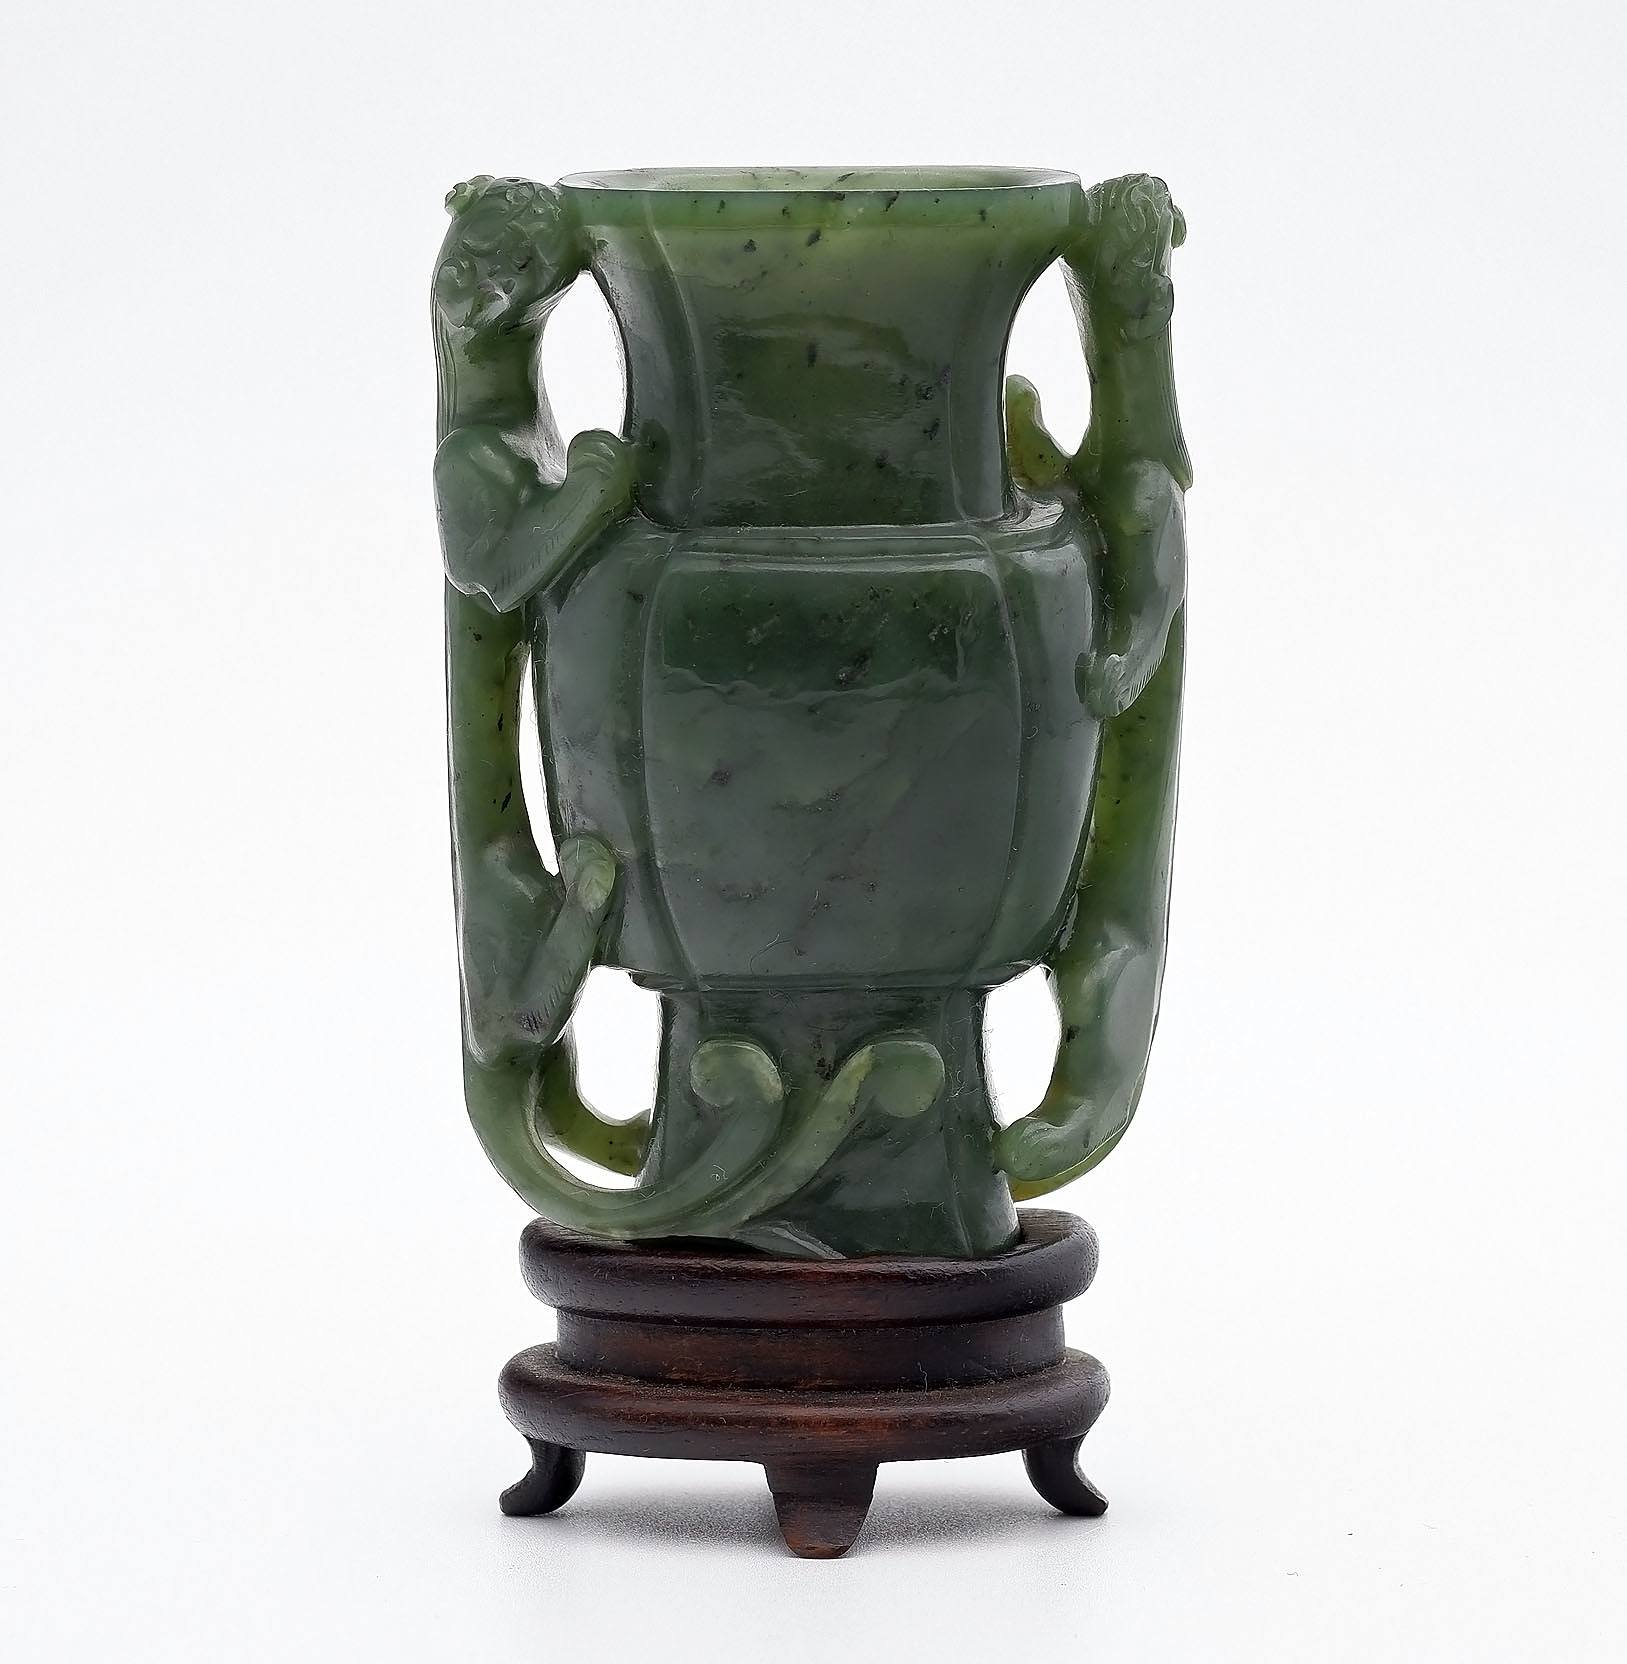 'Fine Chinese Spinach Green Jade Miniature Vase with Chilong Handles on Rosewood Stand, Late Qing Dynasty'